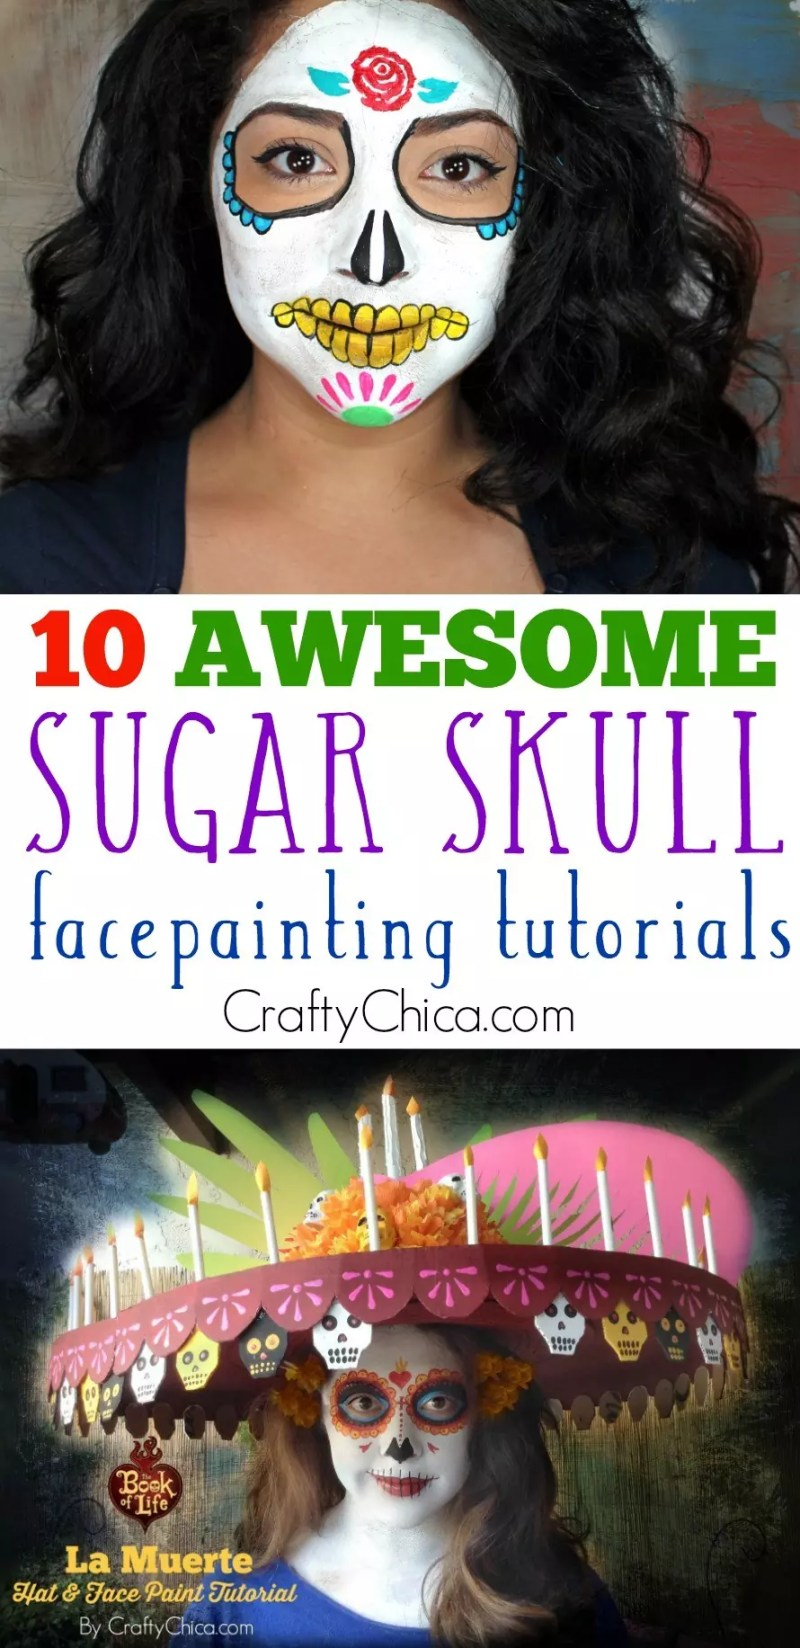 sugar skull facepainting